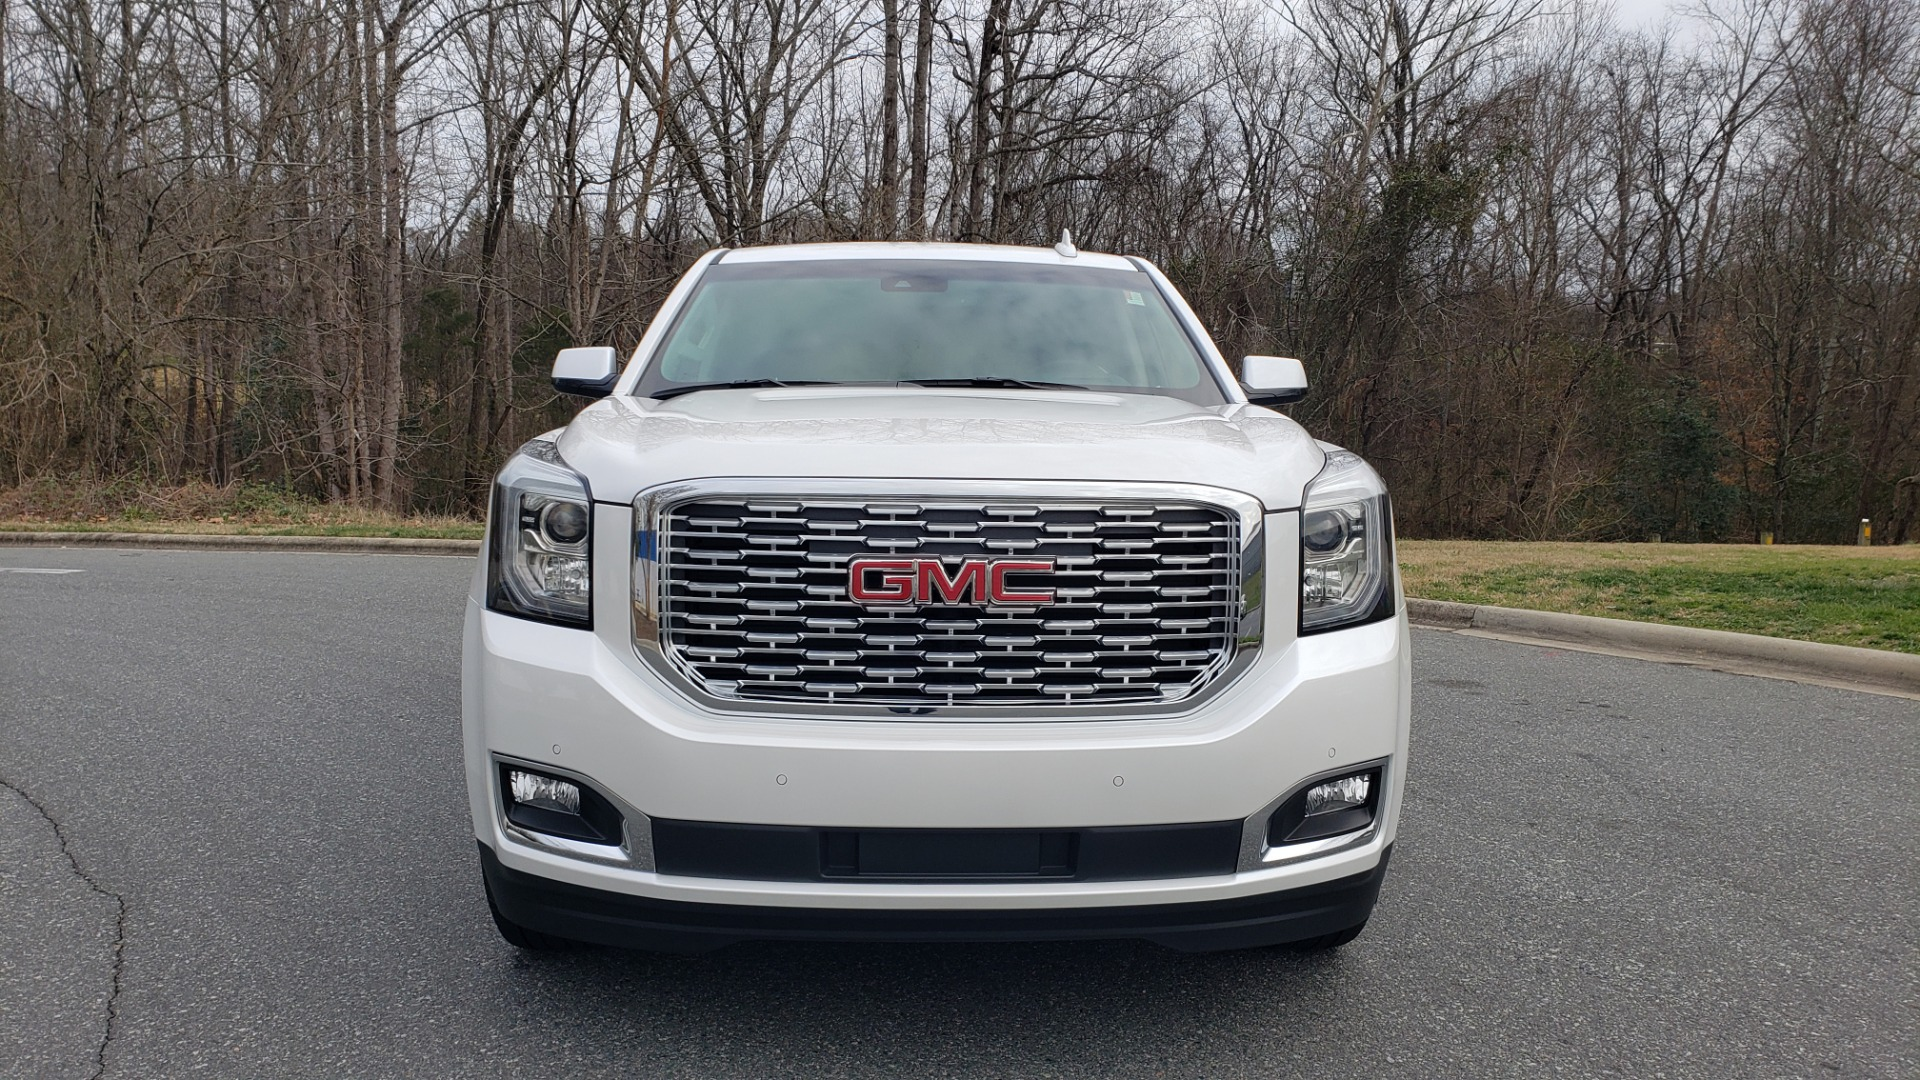 Used 2018 GMC YUKON DENALI 4WD / NAV / SUNROOF / BOSE / 3-ROW / REARVIEW for sale Sold at Formula Imports in Charlotte NC 28227 25